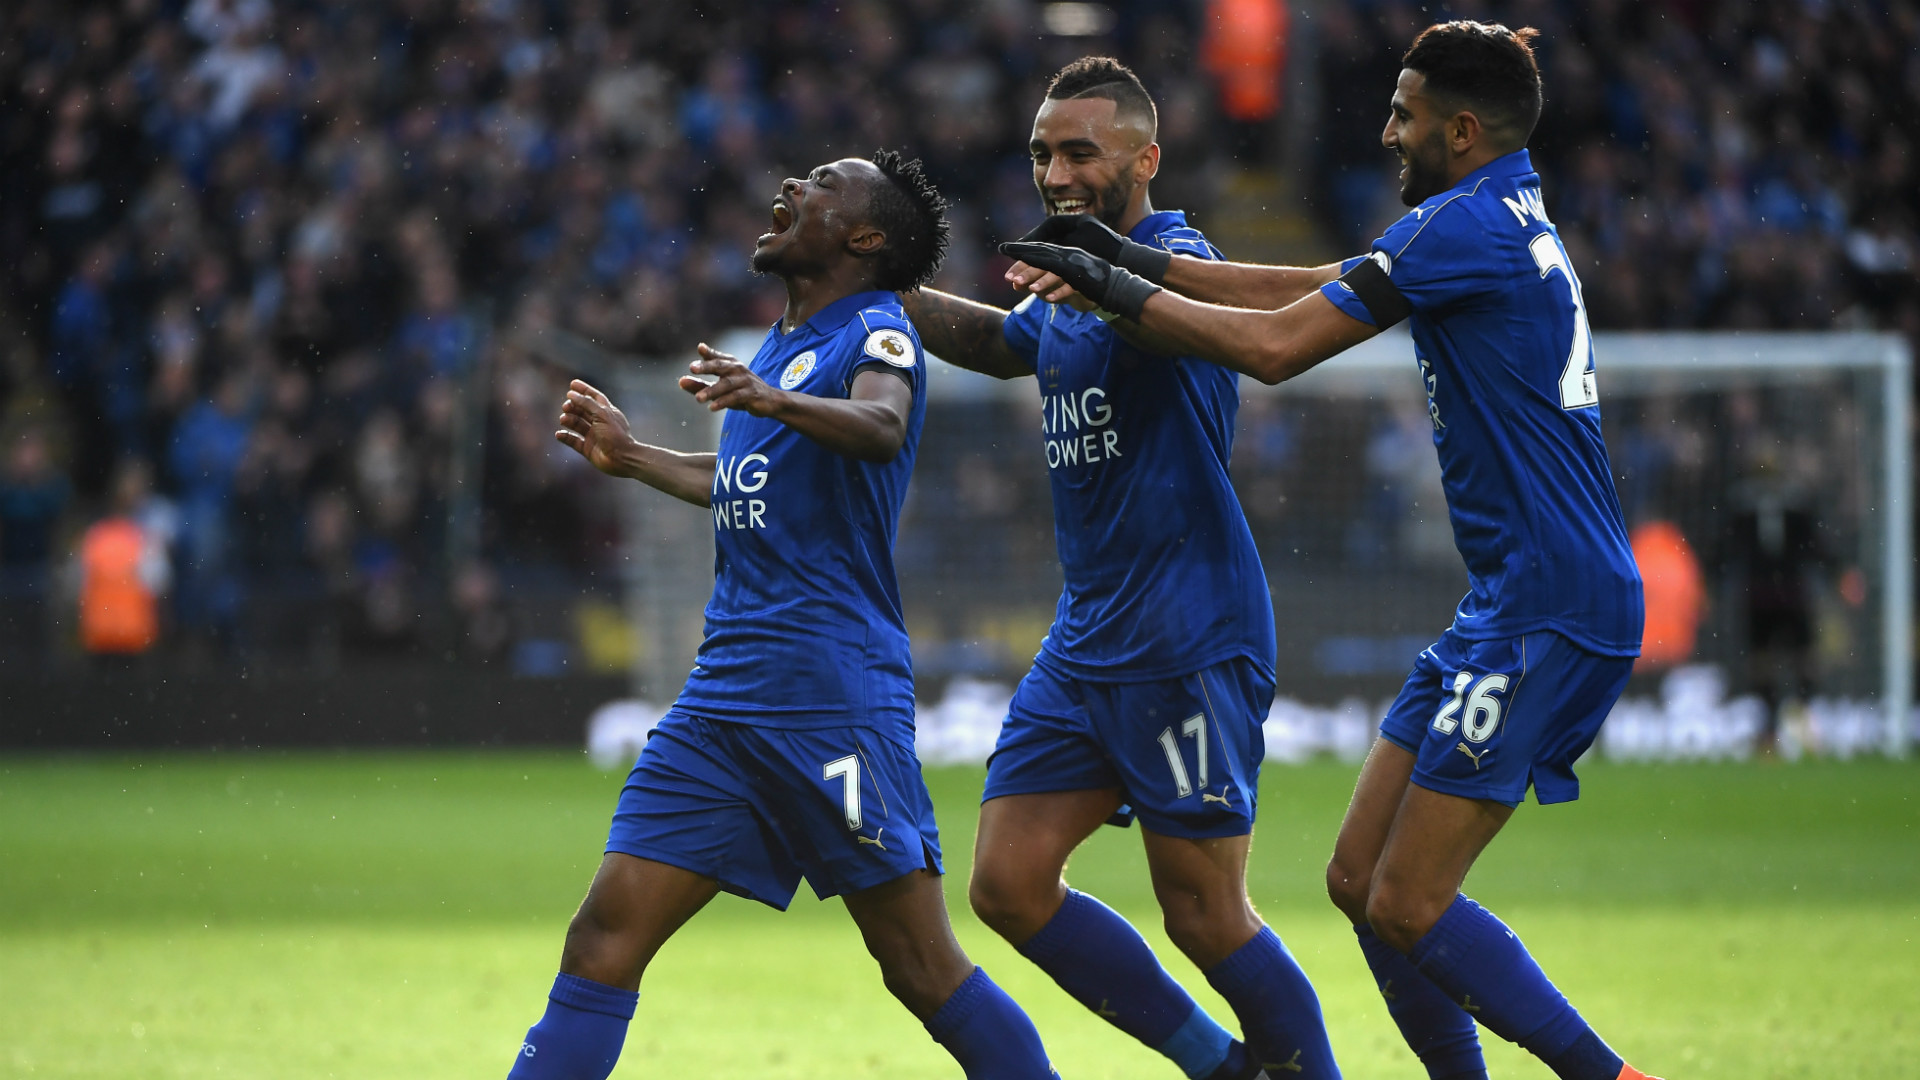 Leicester City 3-1 Crystal Palace: Foxes get back to winning ways